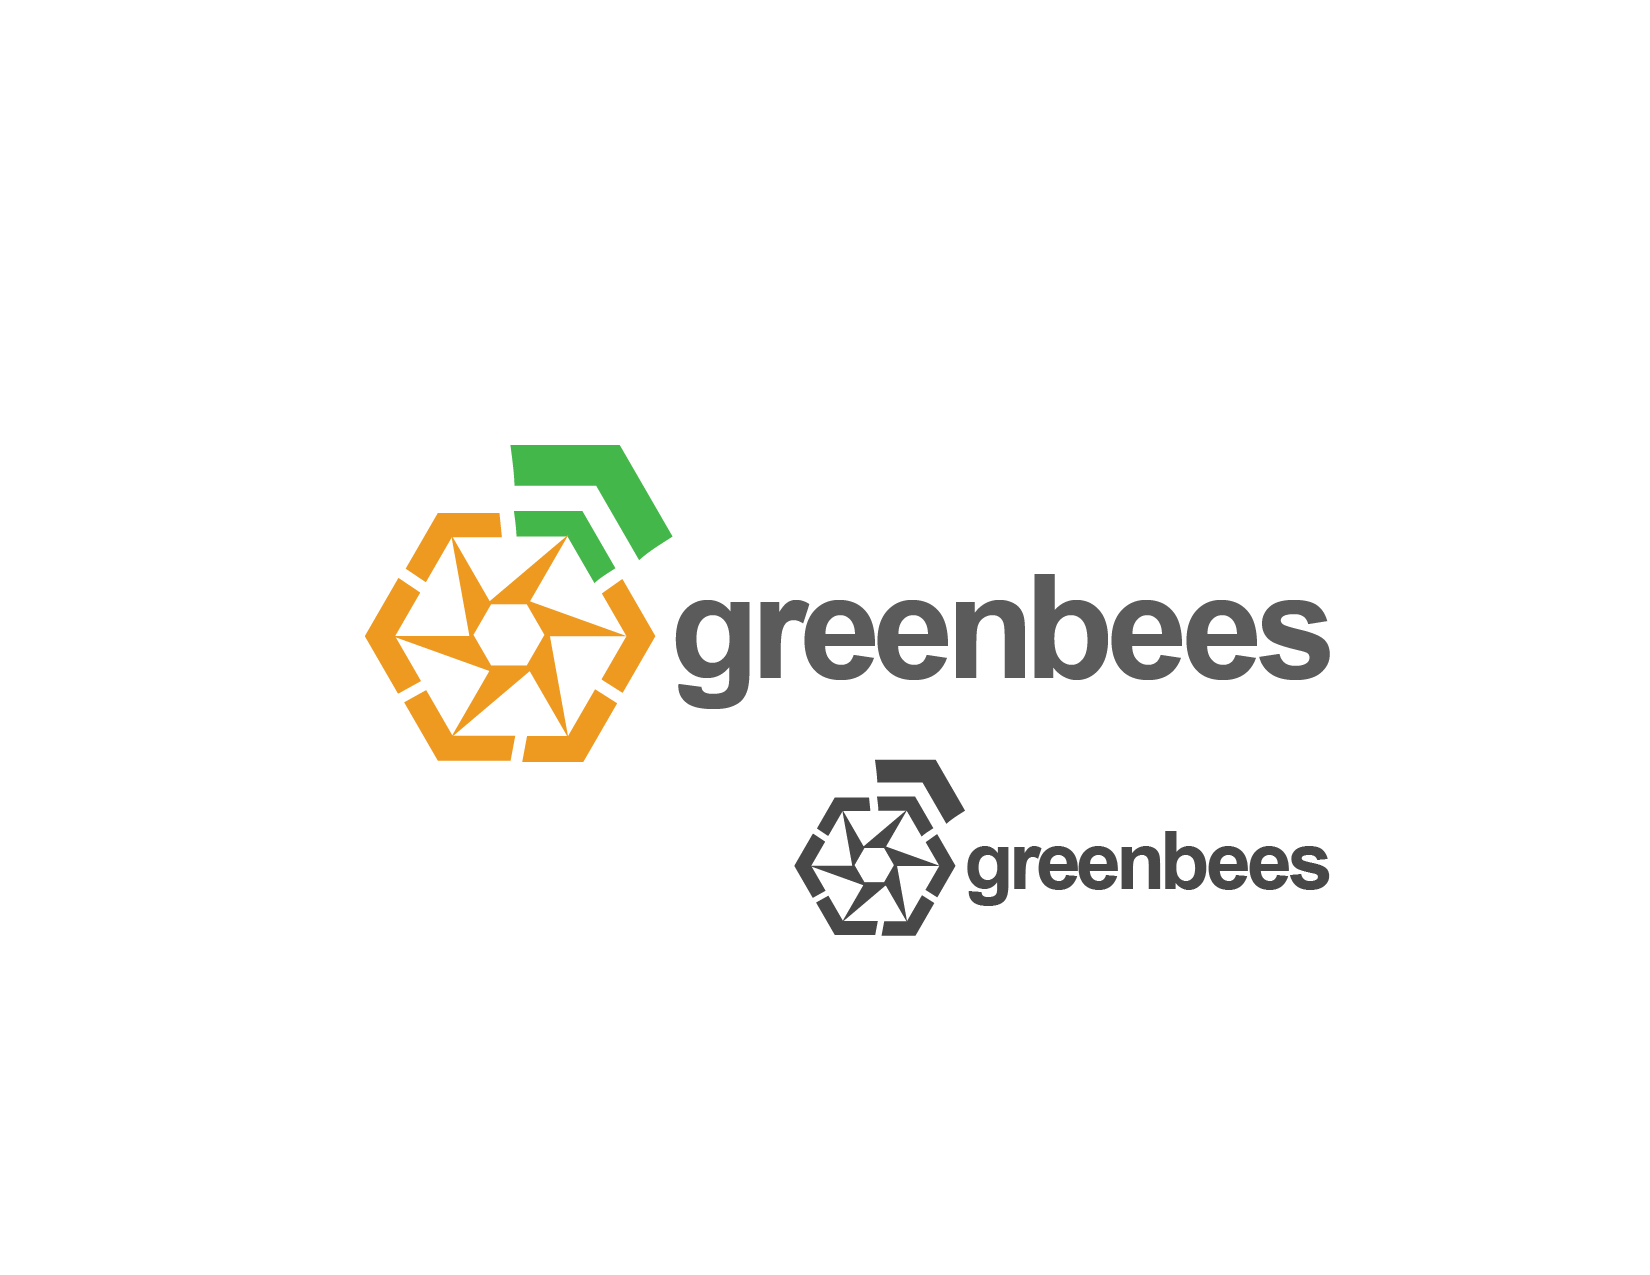 Logo Design by Private User - Entry No. 94 in the Logo Design Contest Greenbees Logo Design.